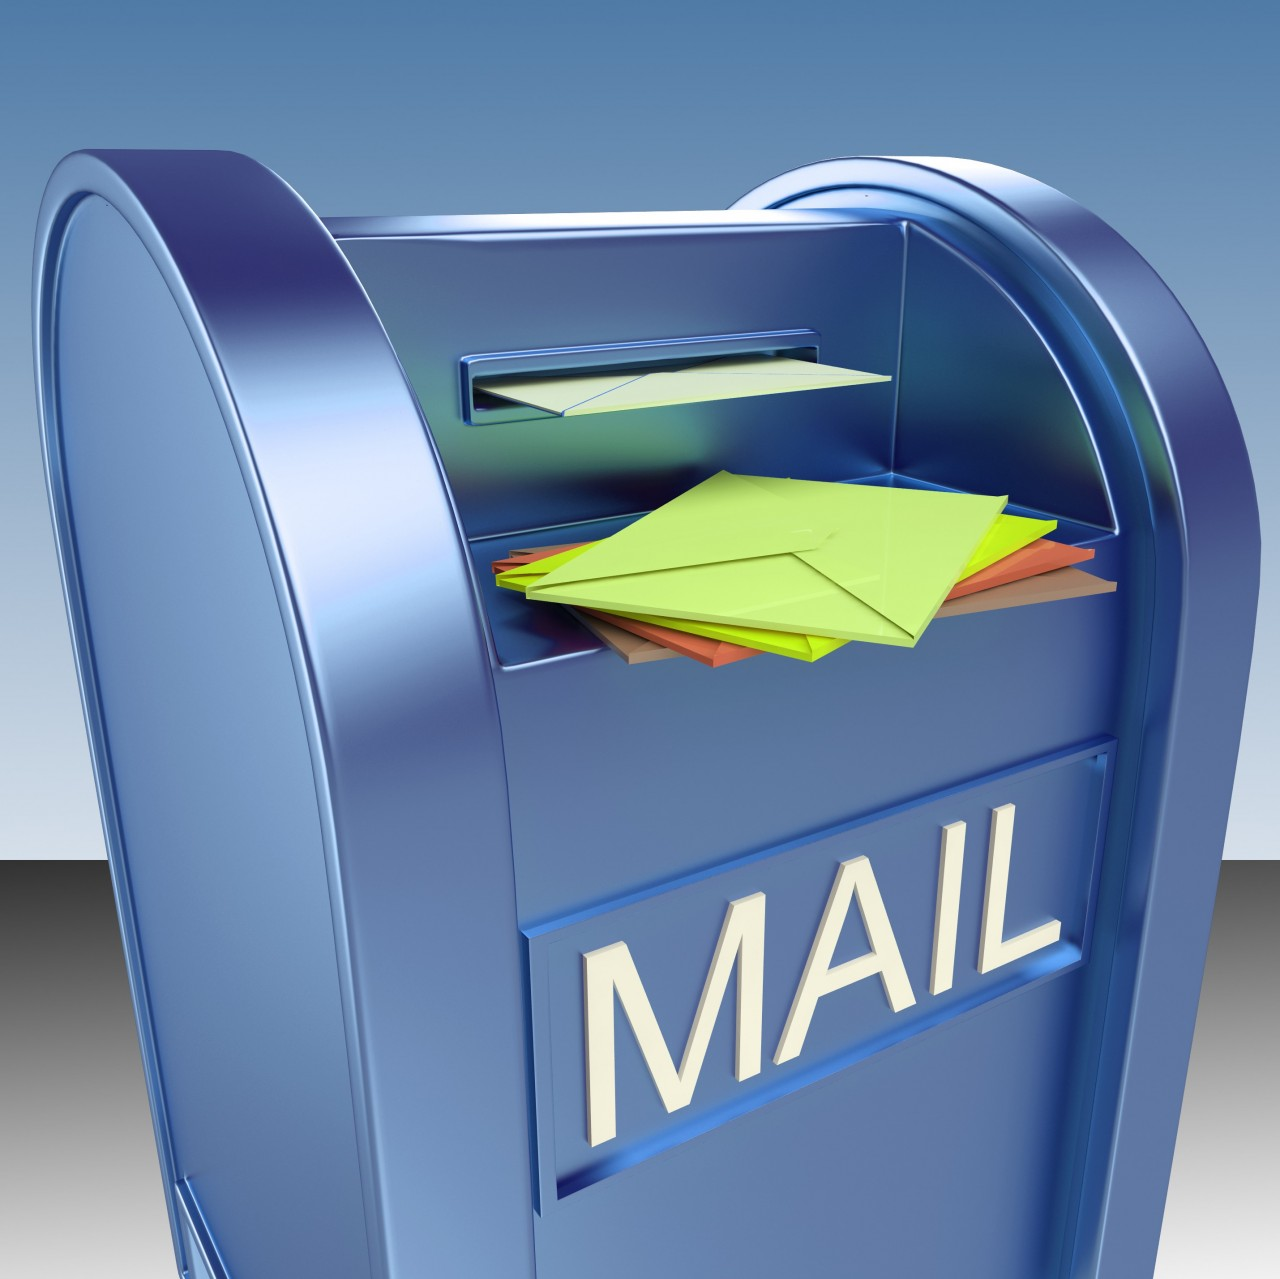 mail-on-mailbox-shows-mail-post_M1IaHzPu